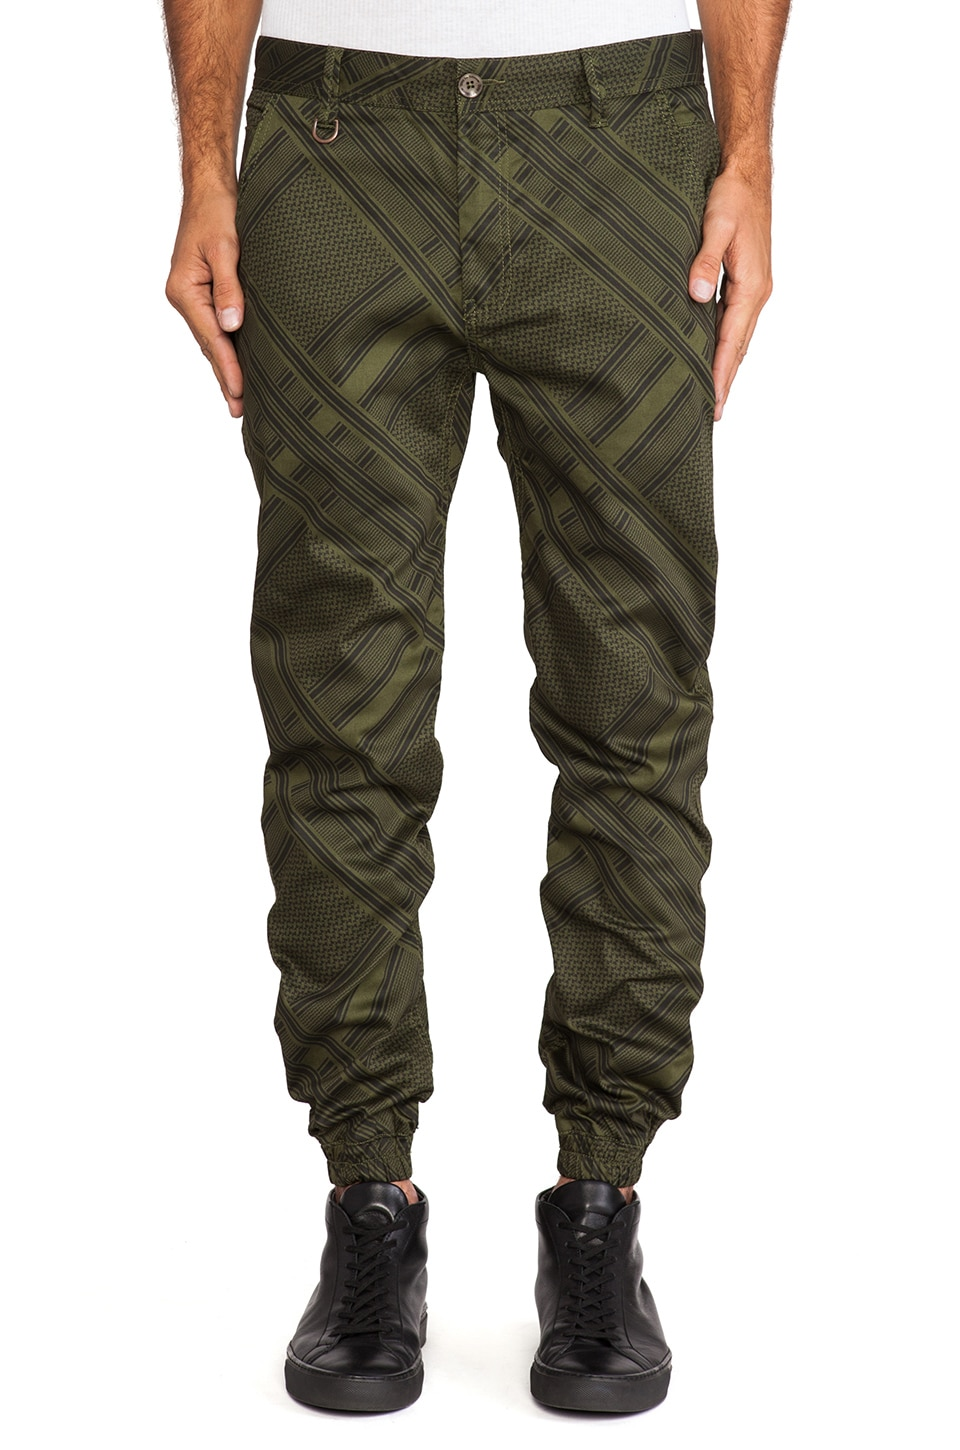 Publish Bancroft Novelty Jogger in Olive